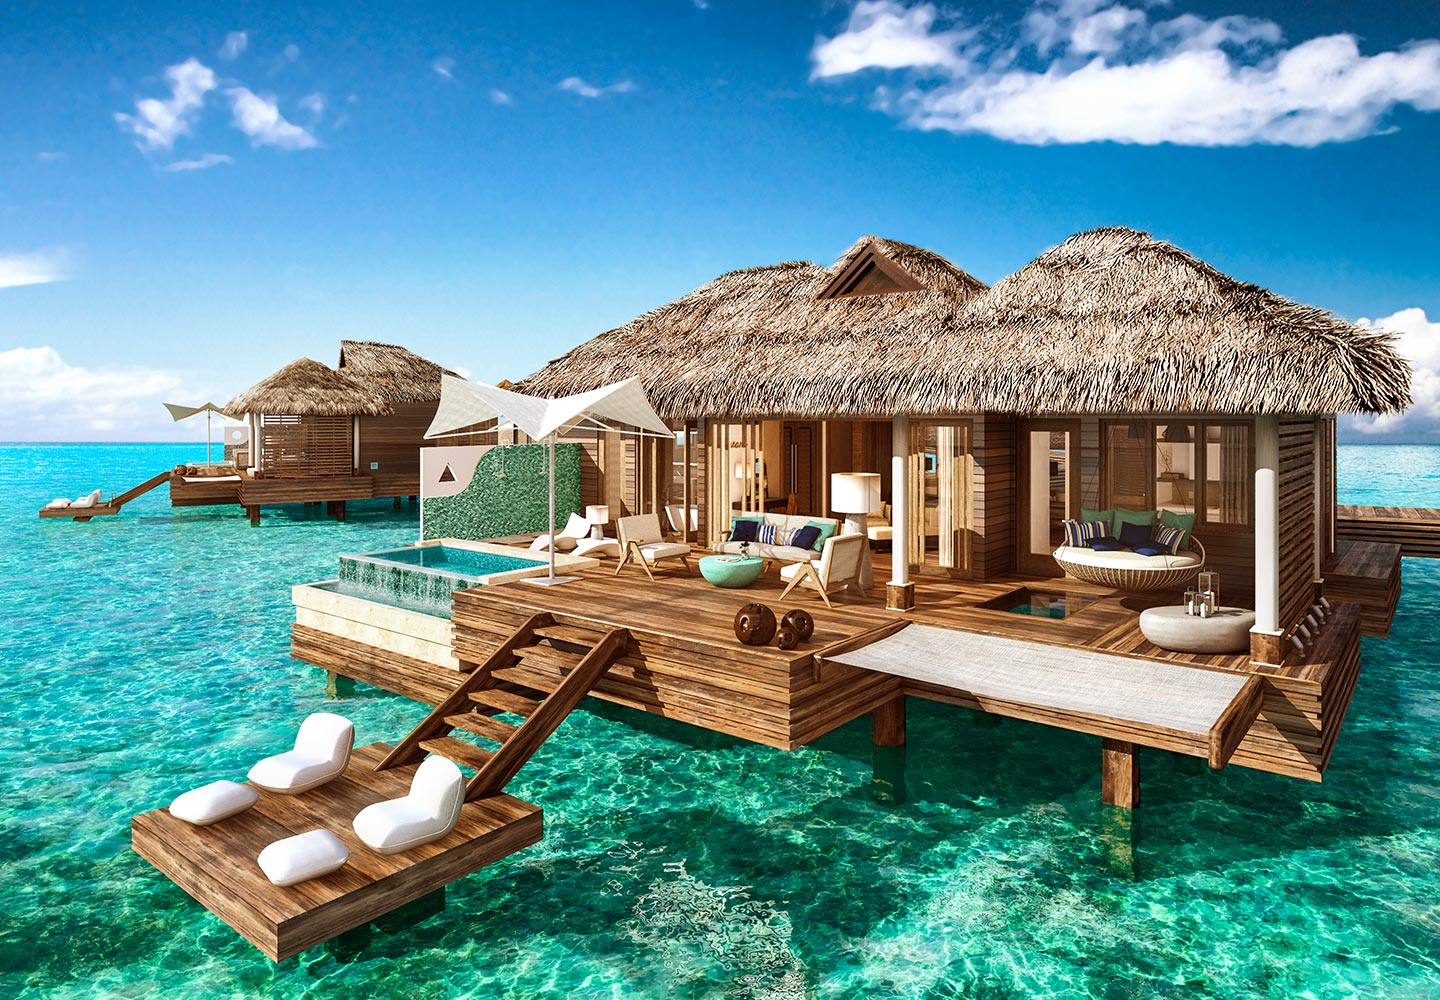 day view of the ultra-luxurious over-the-water bungalows at Sandals Royal Caribbean resort in Jamaica, all inclusive adults only vacation packages